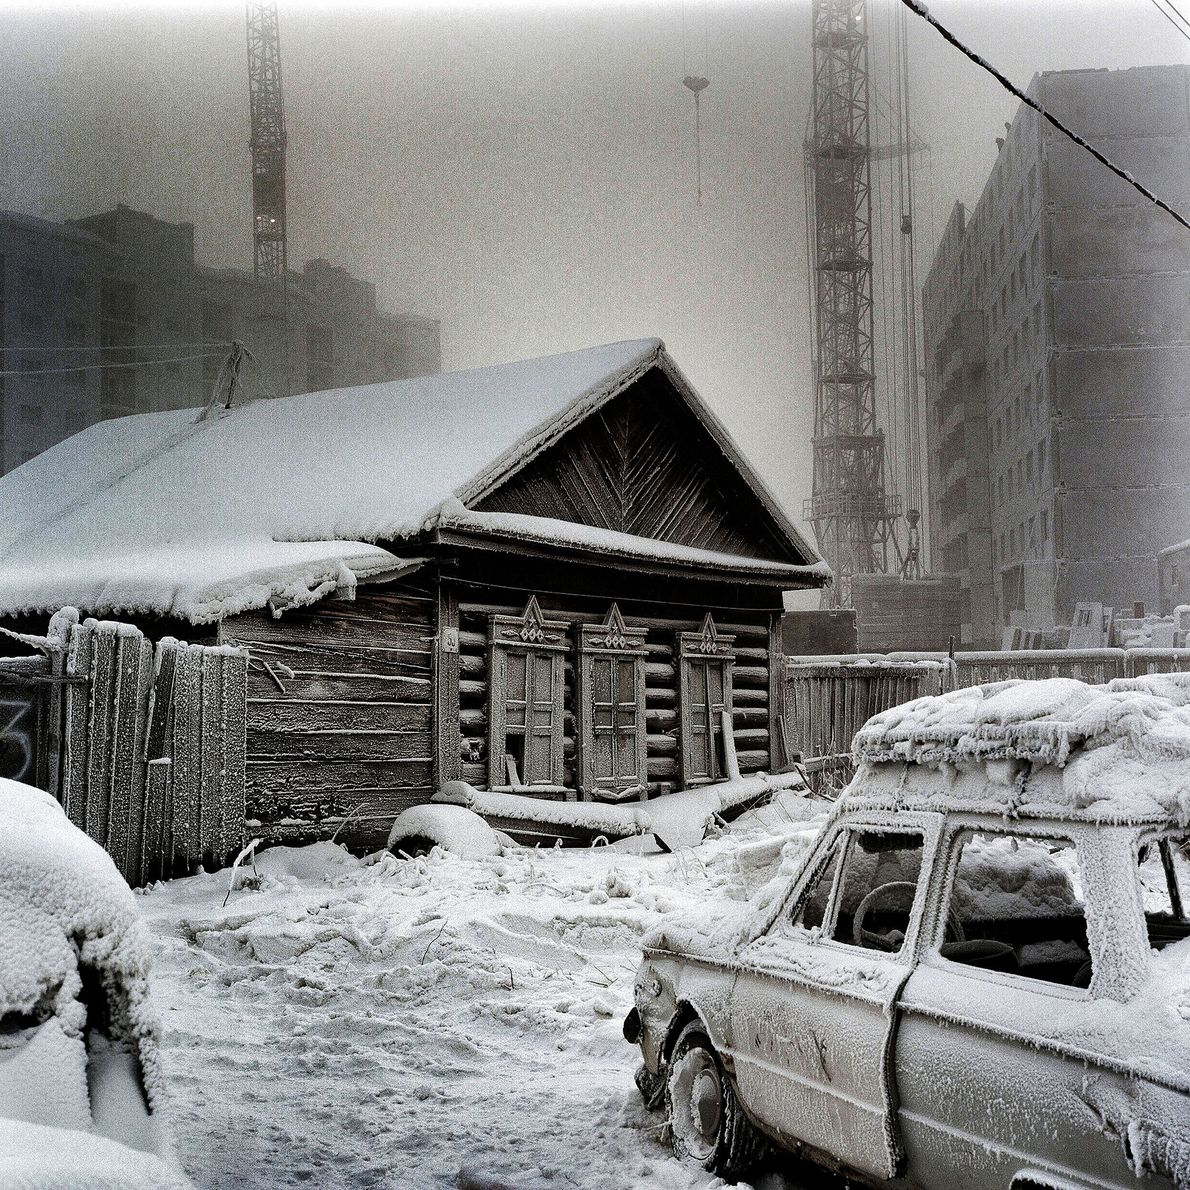 A traditional Siberian wooden house is juxtaposed against newer construction. Despite the cold, the economy is ...